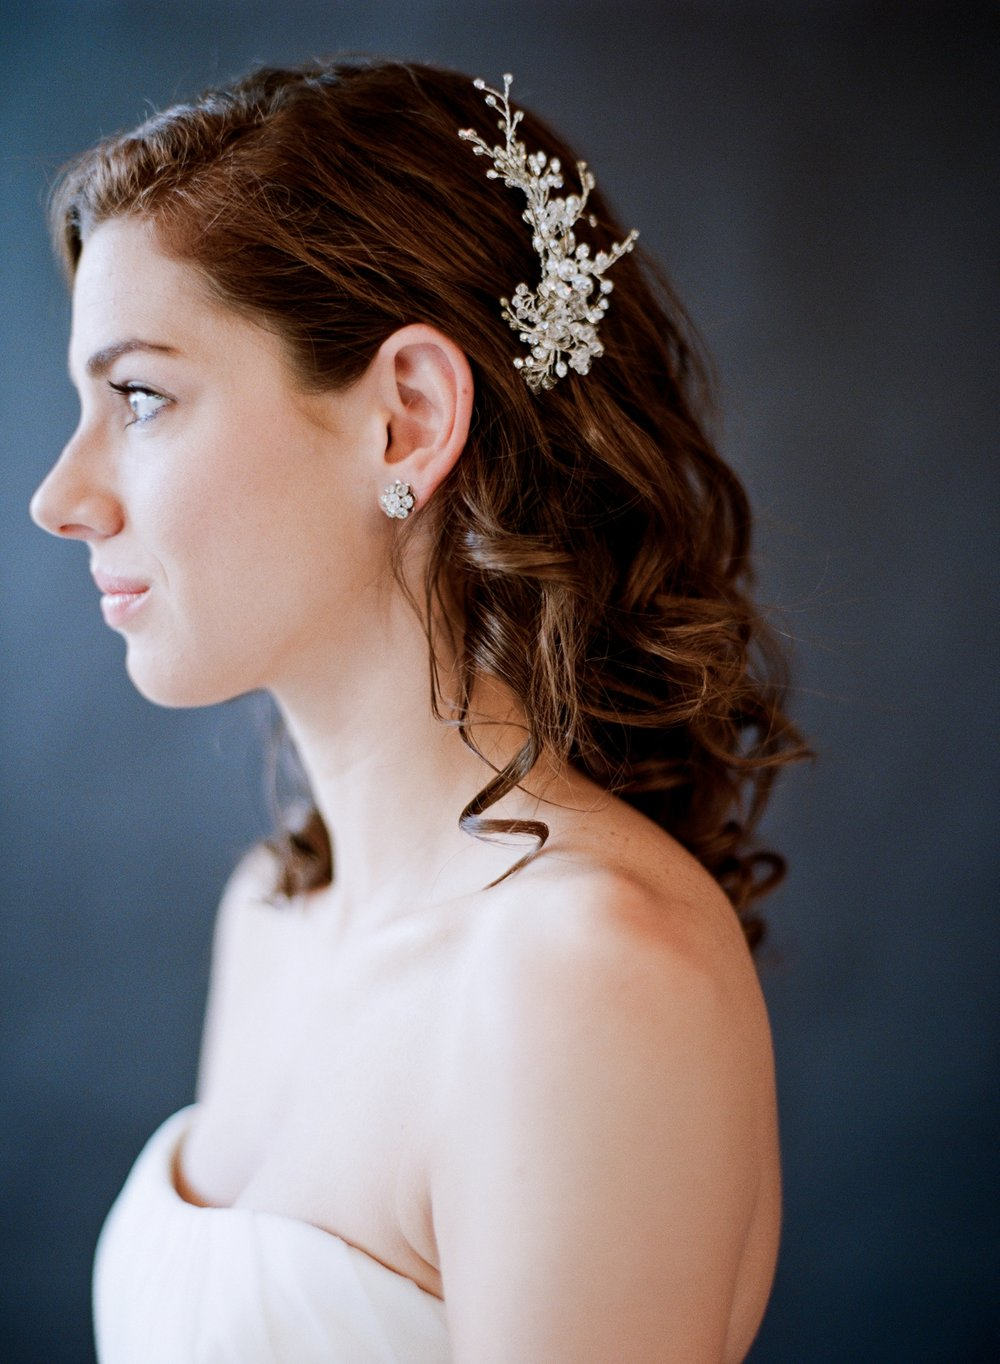 Bridal Hair Piece | West Palm Beach Wedding Photographer | Shannon Griffin 4.jpg